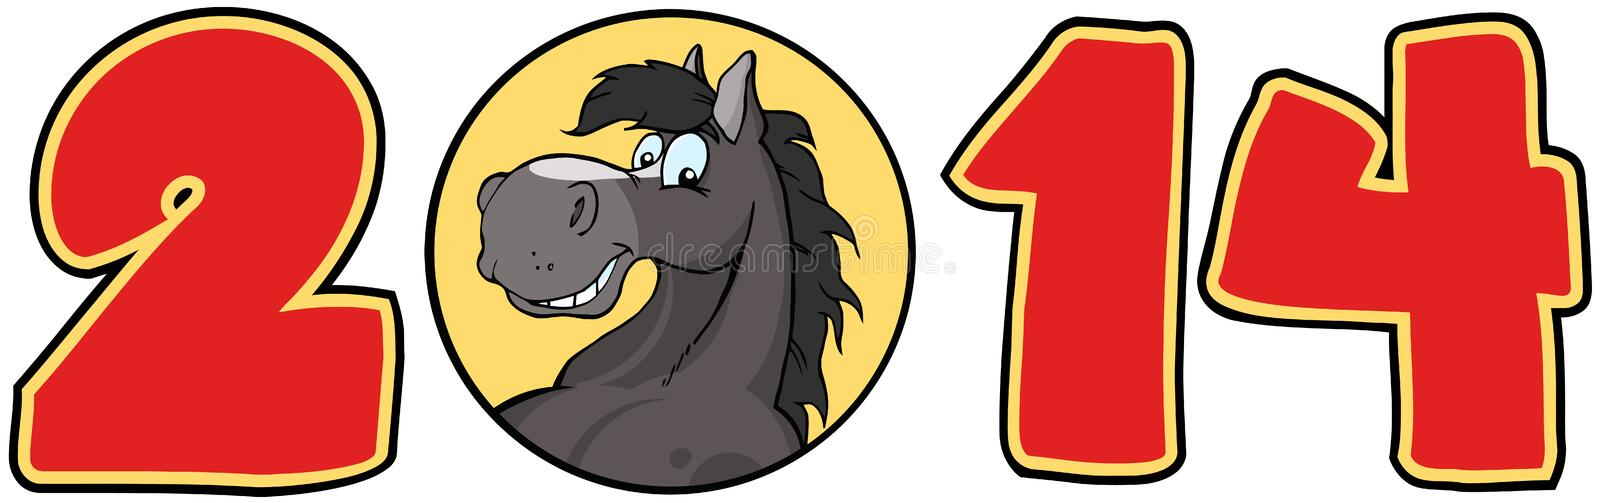 Download 2014 Year Red Numbers With Horse Face Over A Circl Stock Vector - Illustration: 31656984